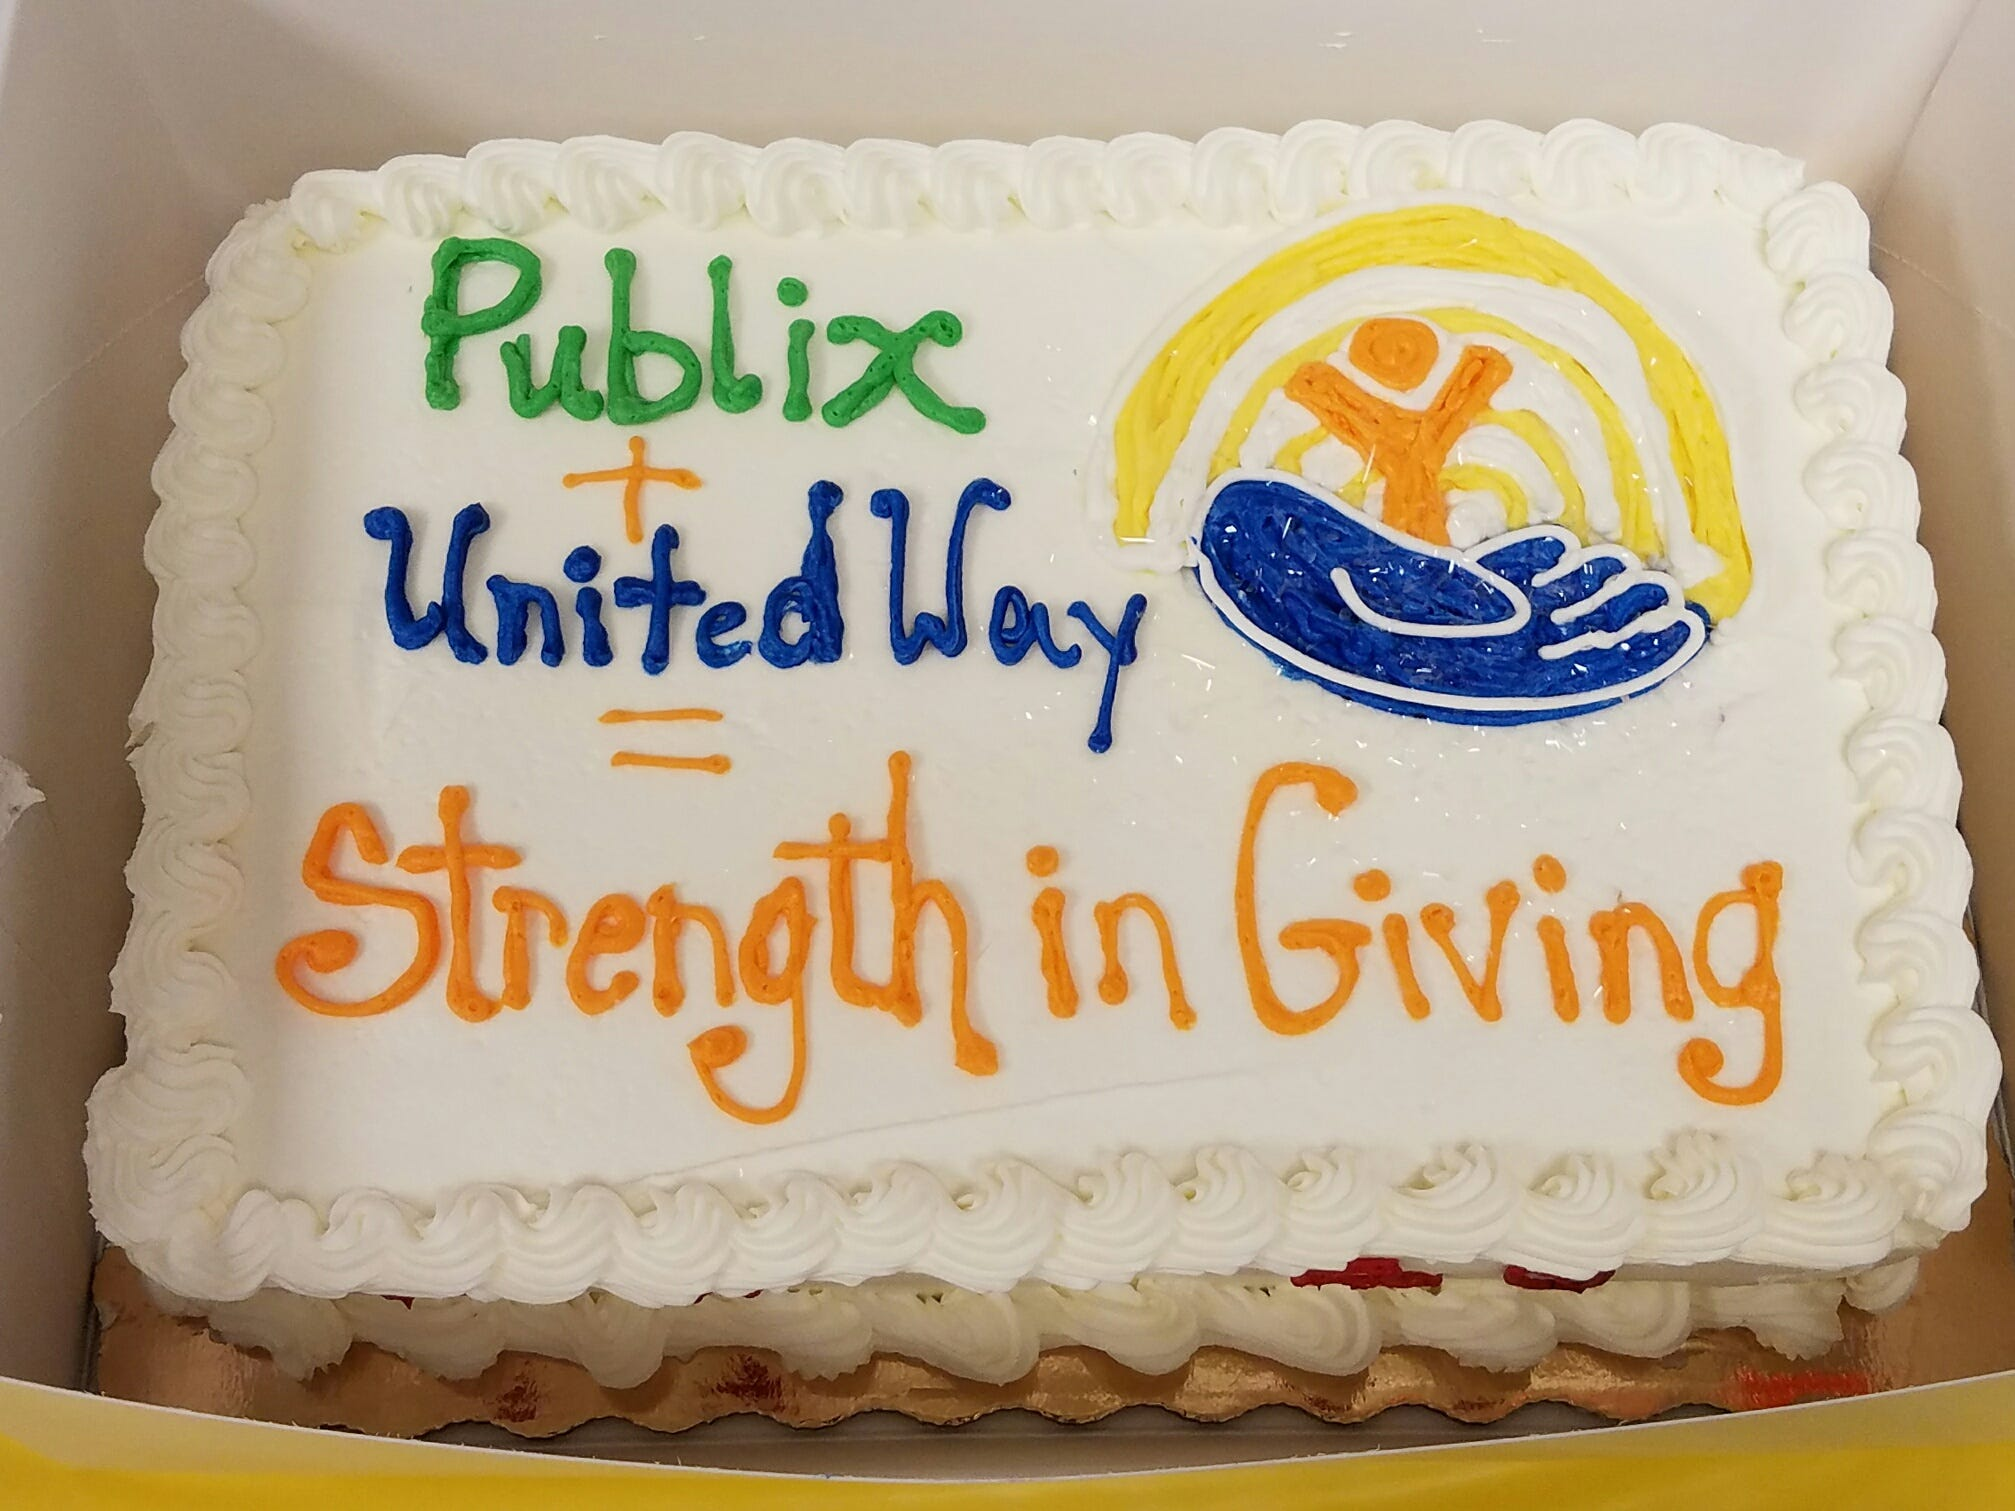 United Way of Indian River County is proud of its decades-long relationship with Publix Super Markets. Since 1990, local Publix associates have contributed $5,100,000 to United Way annual campaigns.